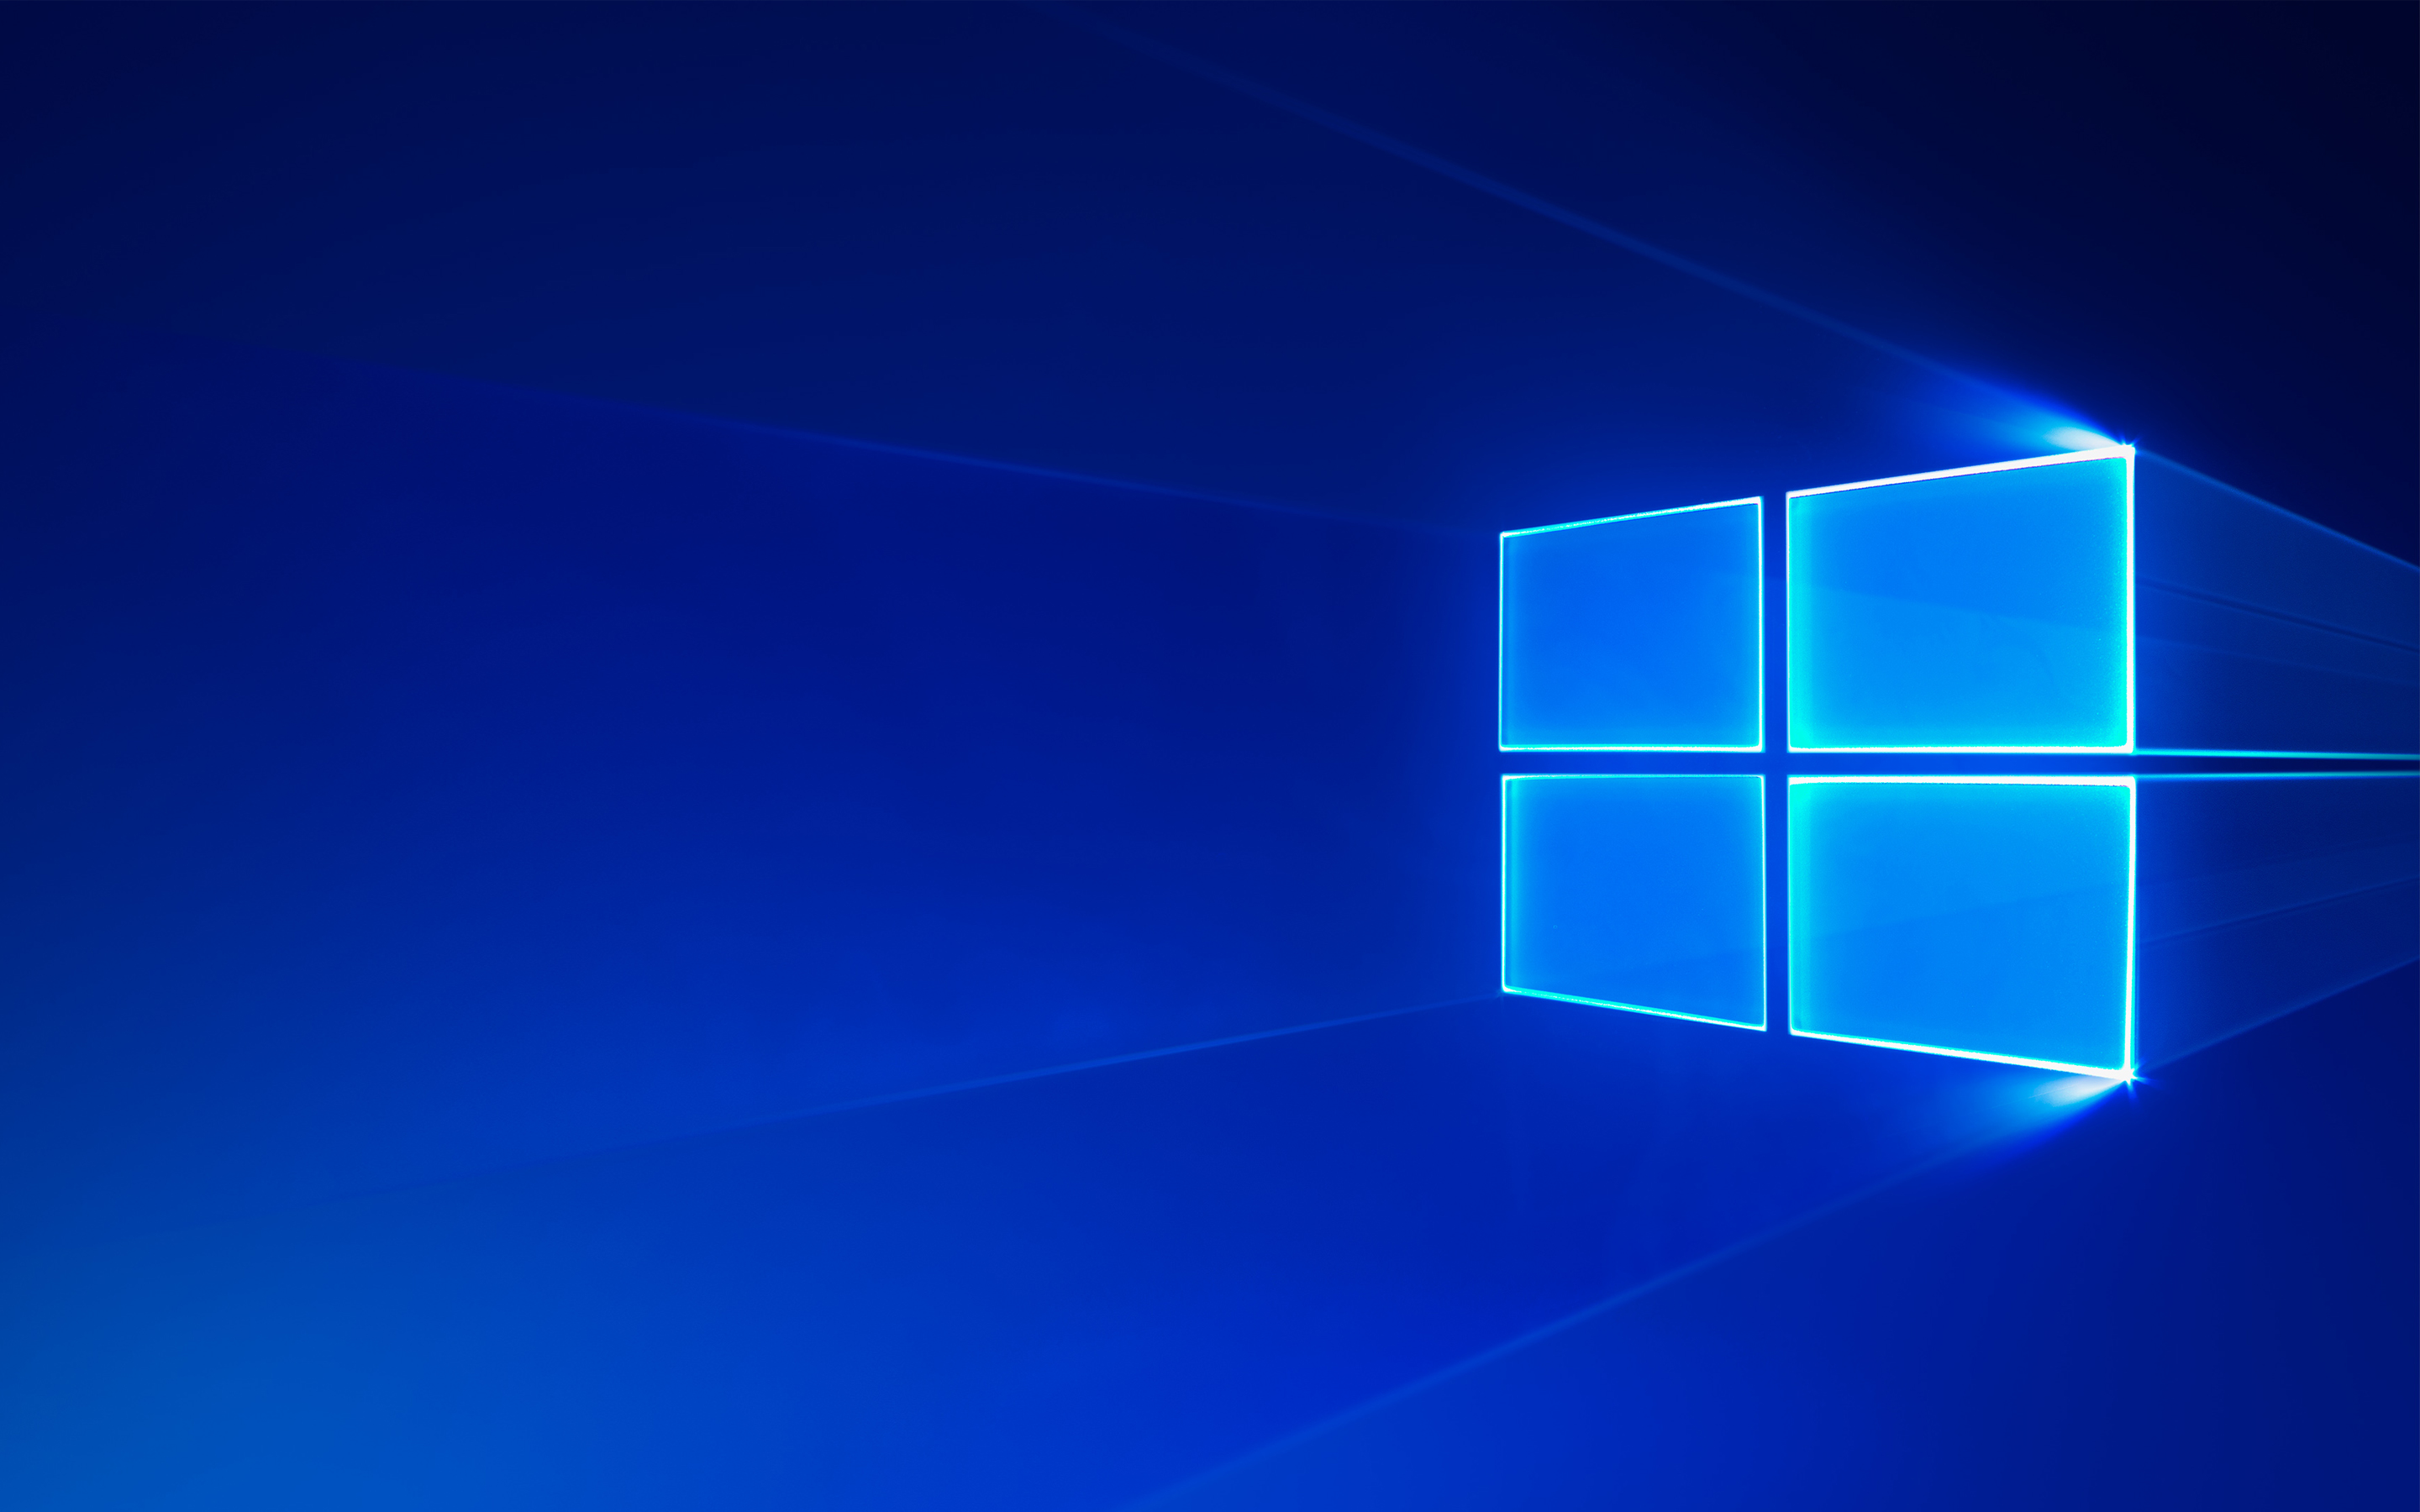 Wallpaper 4k Windows 10 S Stock 4k Default Razer Stock Windows